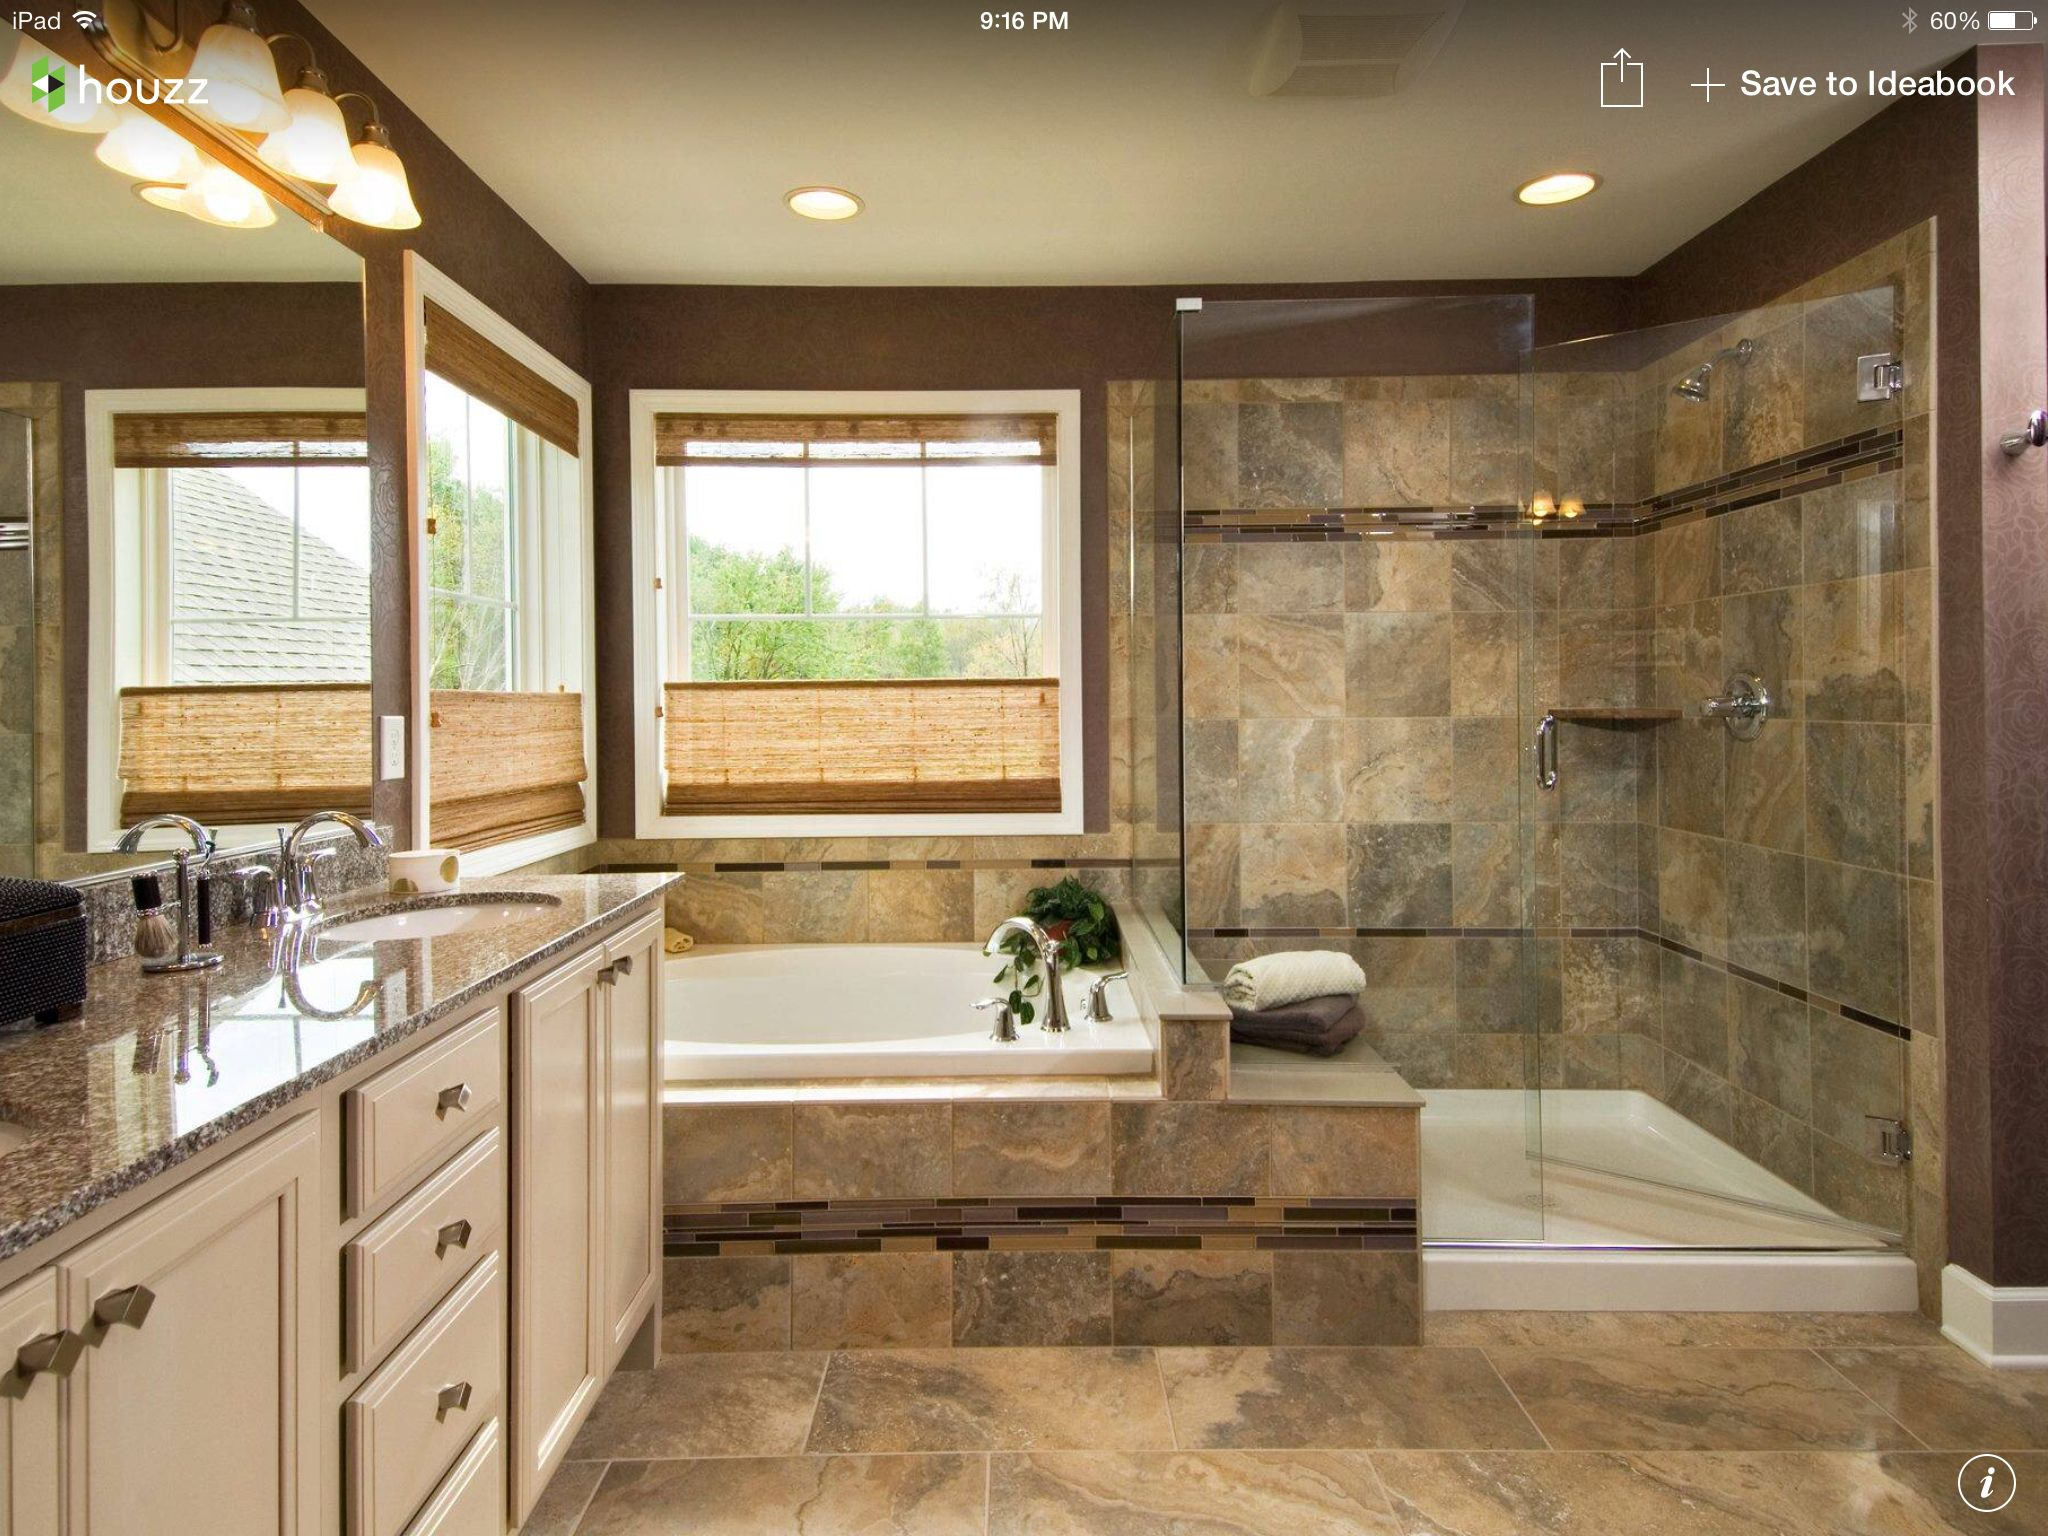 Remodel Bathroom Pinterest 5 piece master bath remodel | bathroom | pinterest | master bath